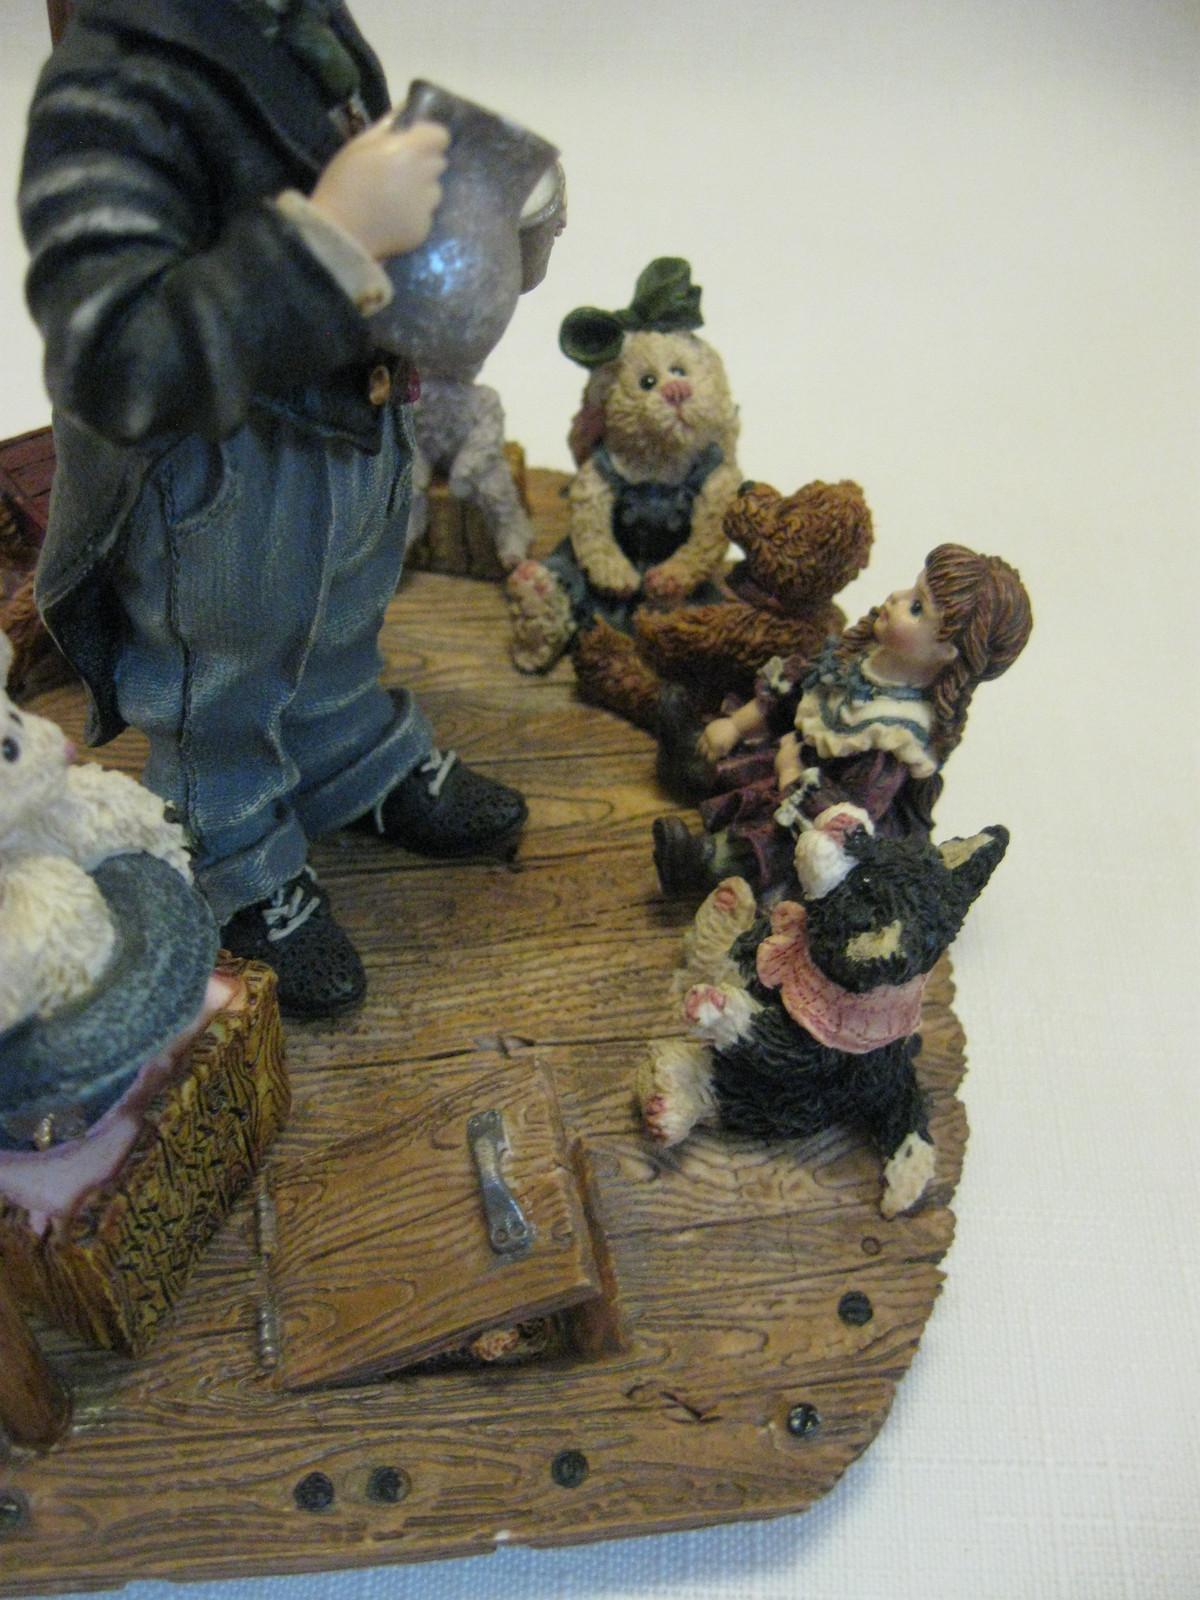 Yesterdays Child Figurine The Magic Show at 4 Limited Edition Boyd's Collection image 4